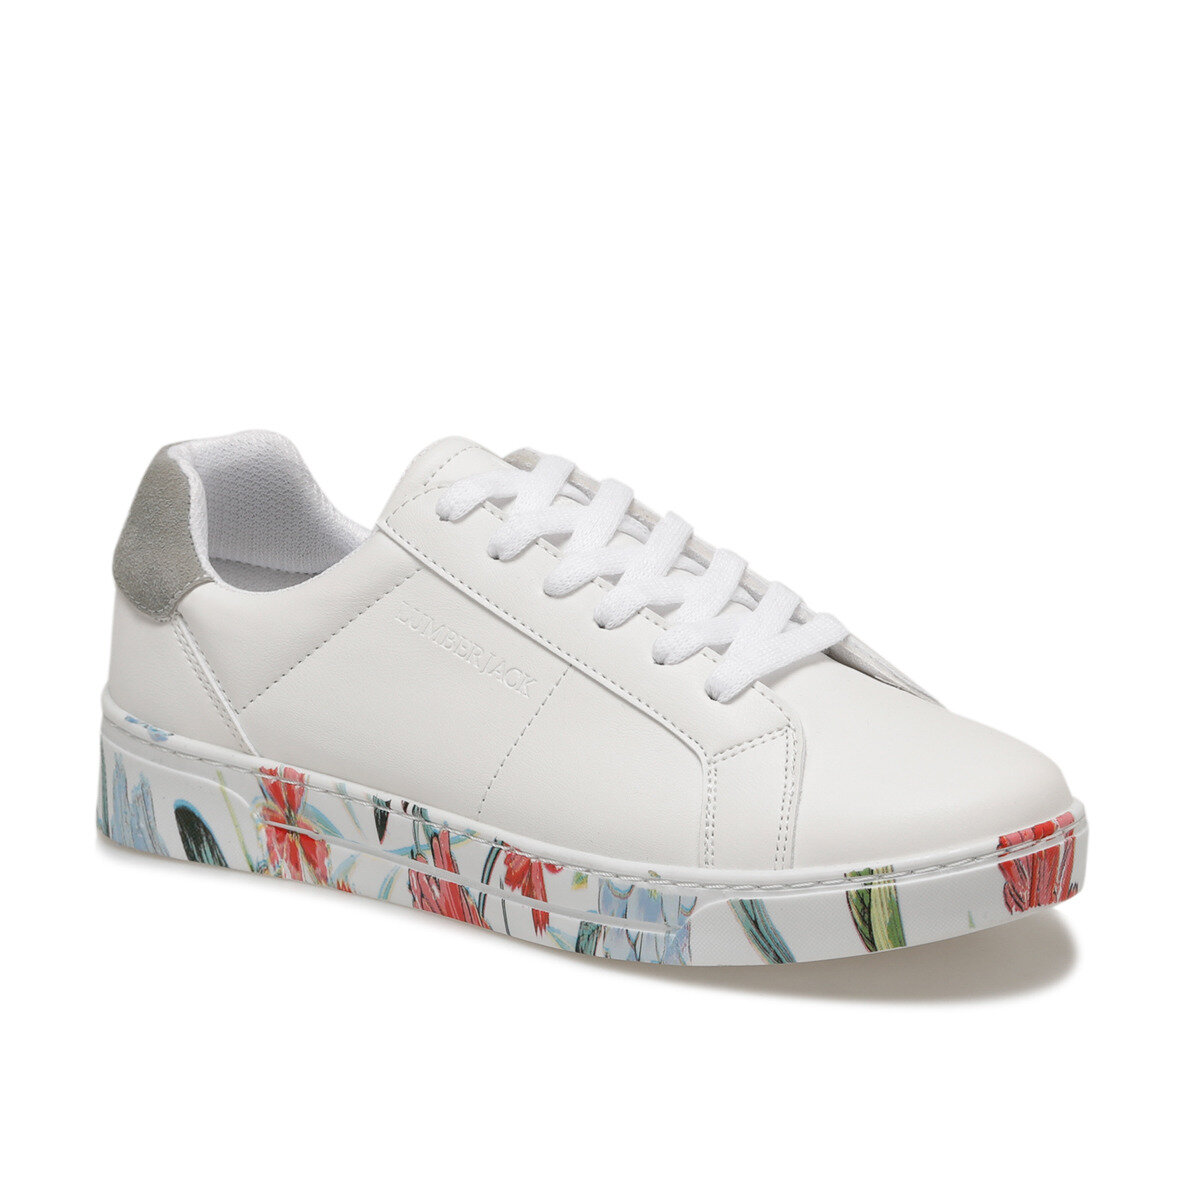 FLO DELBIN White Women 'S Sneaker Shoes LUMBERJACK